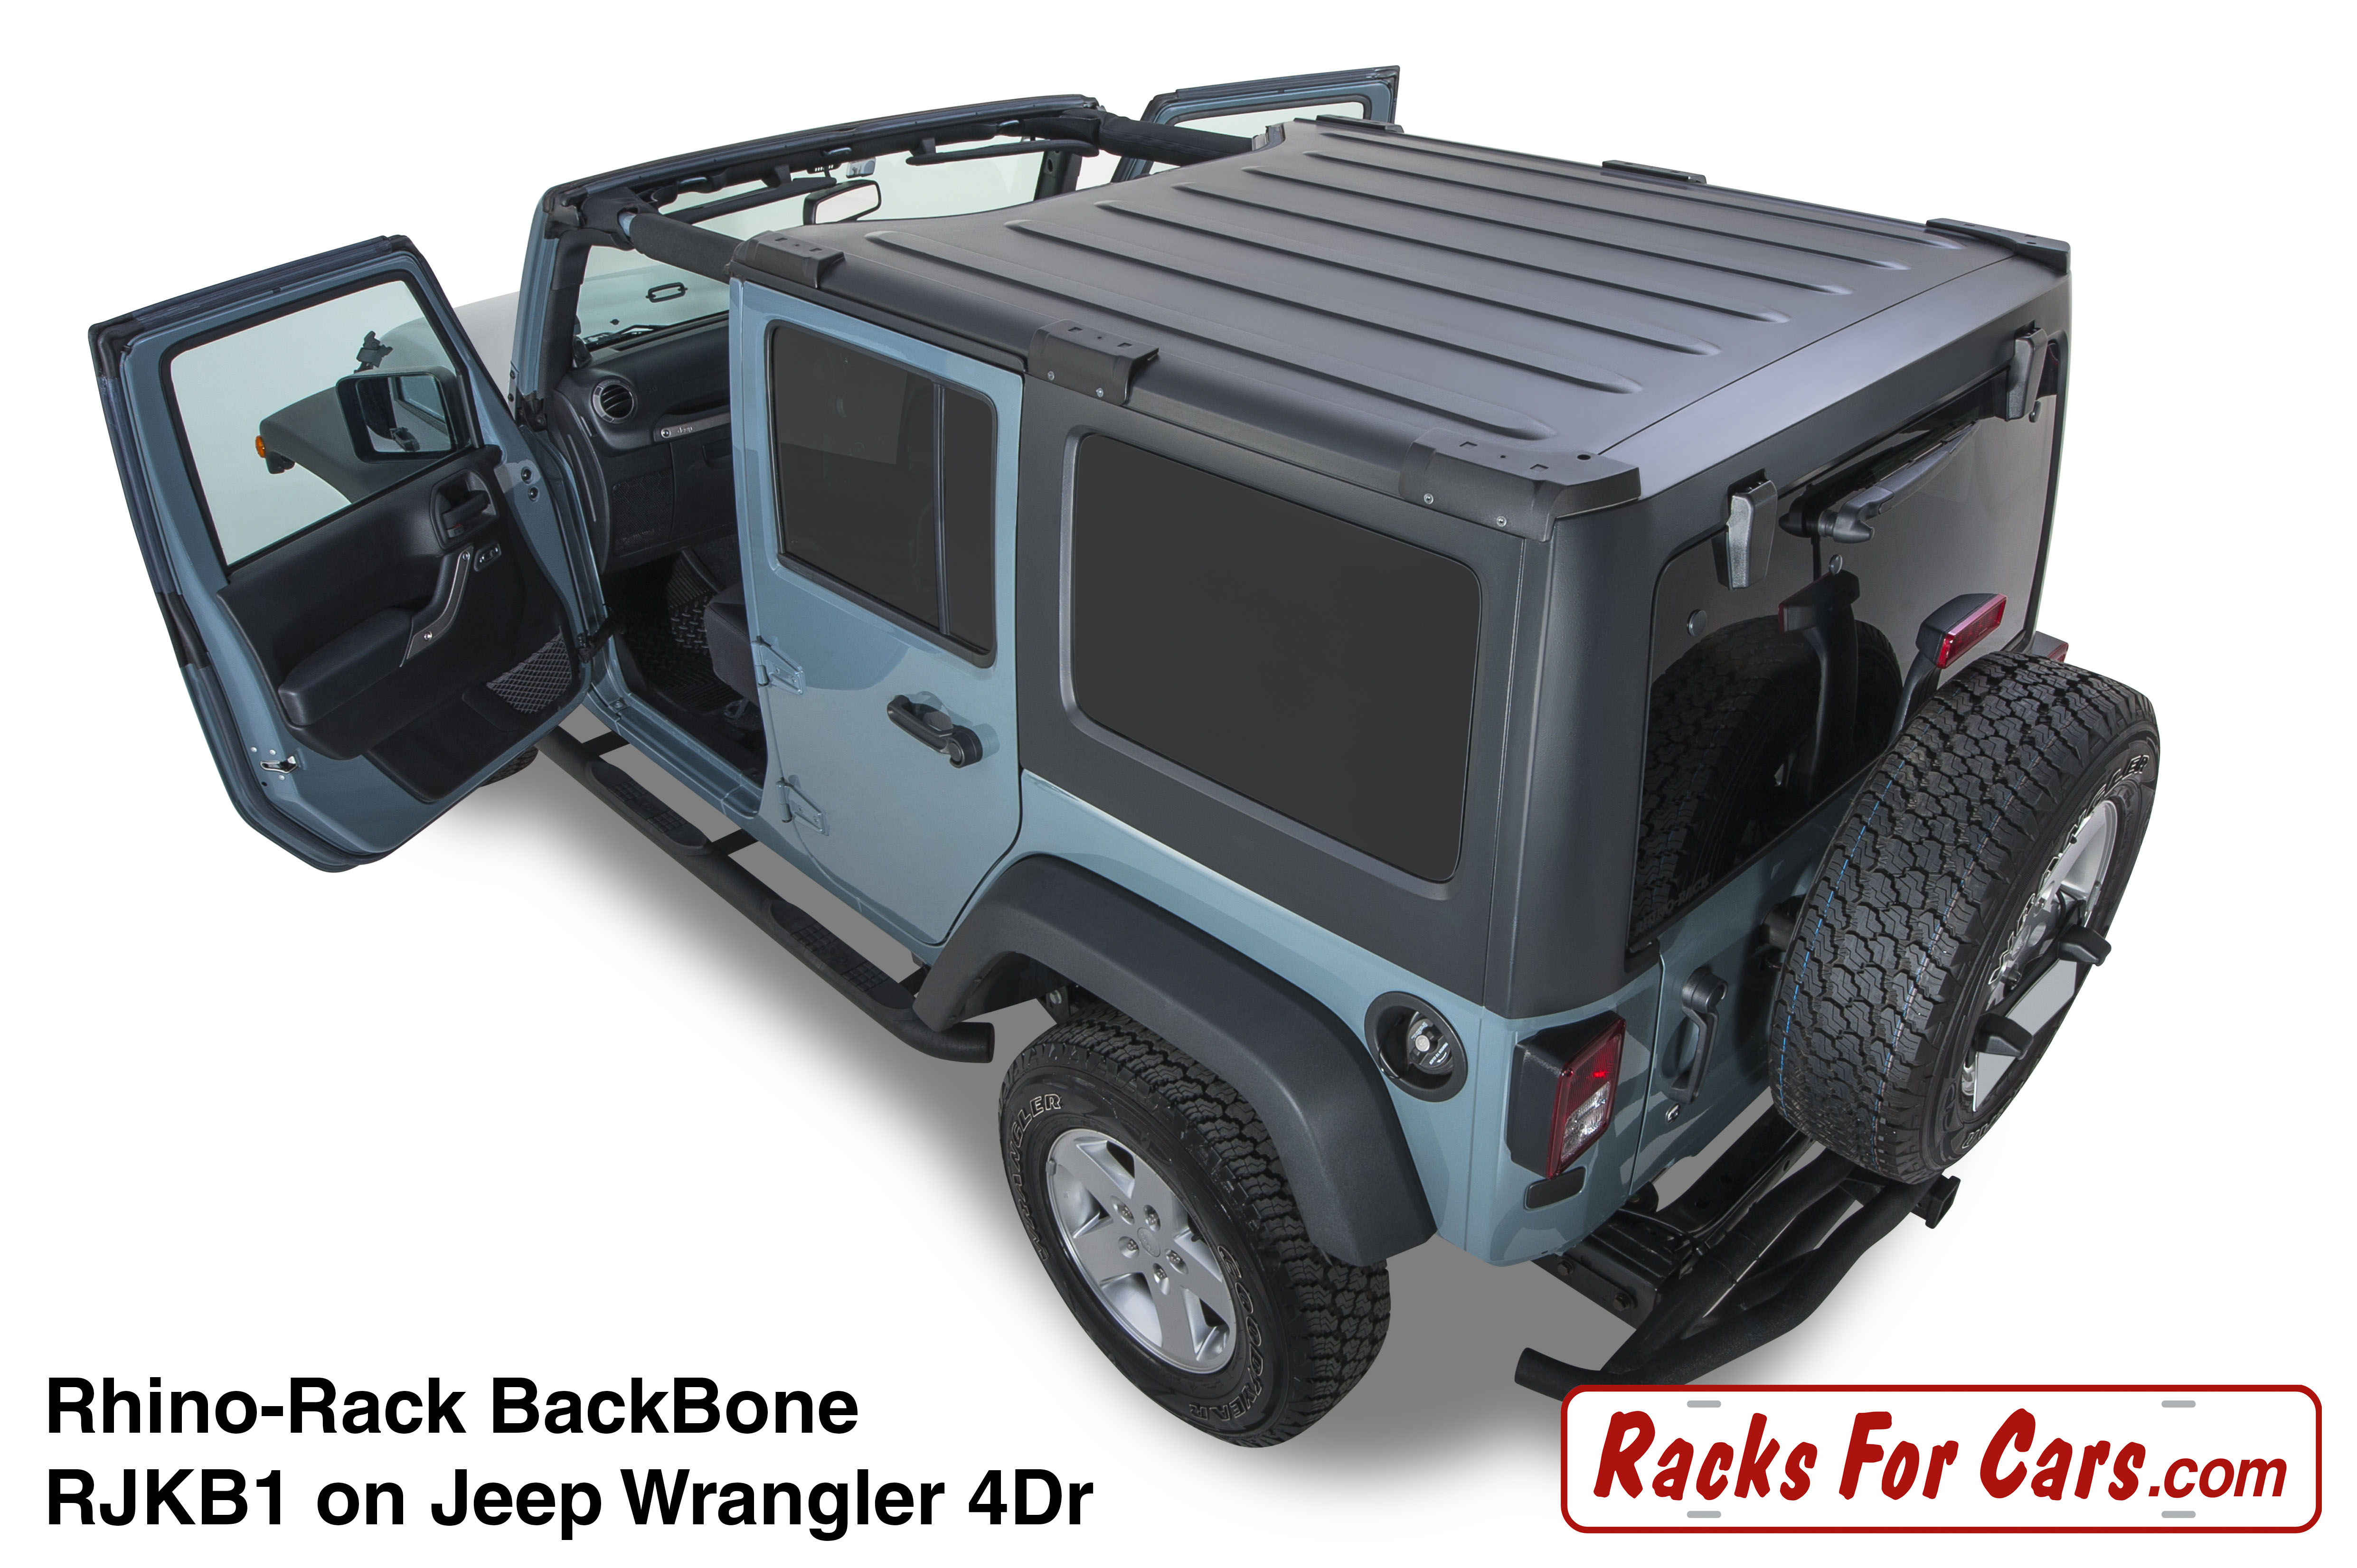 door uv jeep long mesh year cherryred products jku your warranty extra provides sunshade length top wrangler sun for full protection cover with shade alien